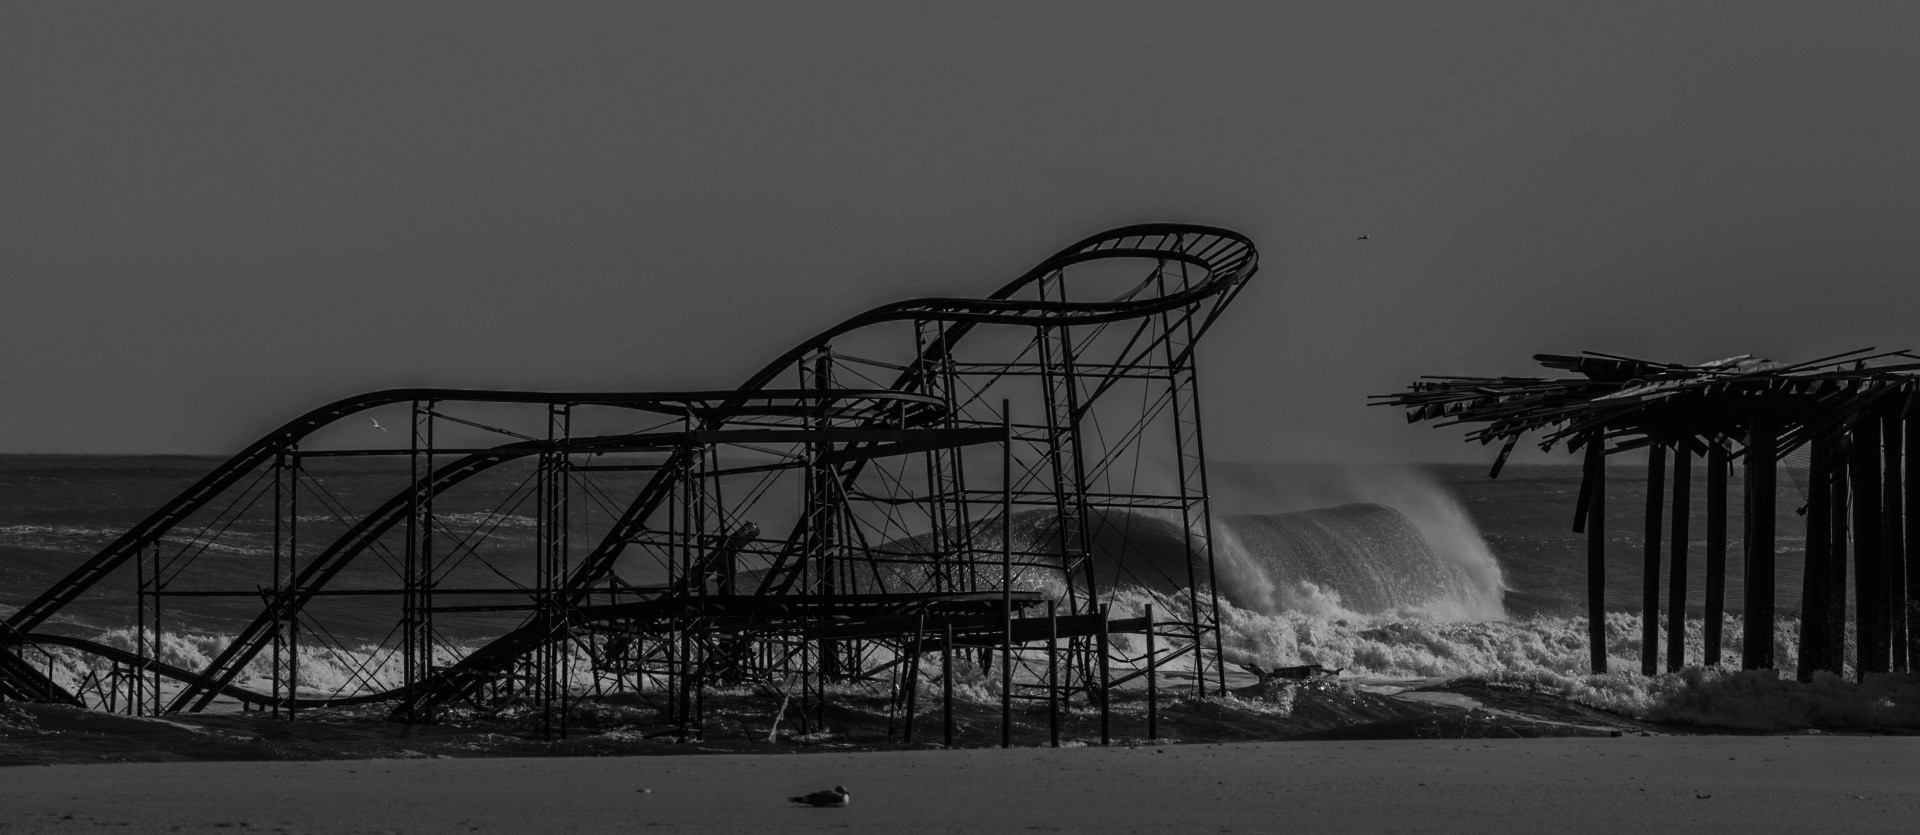 BrendanFallonphoto's photo of Casino Pier